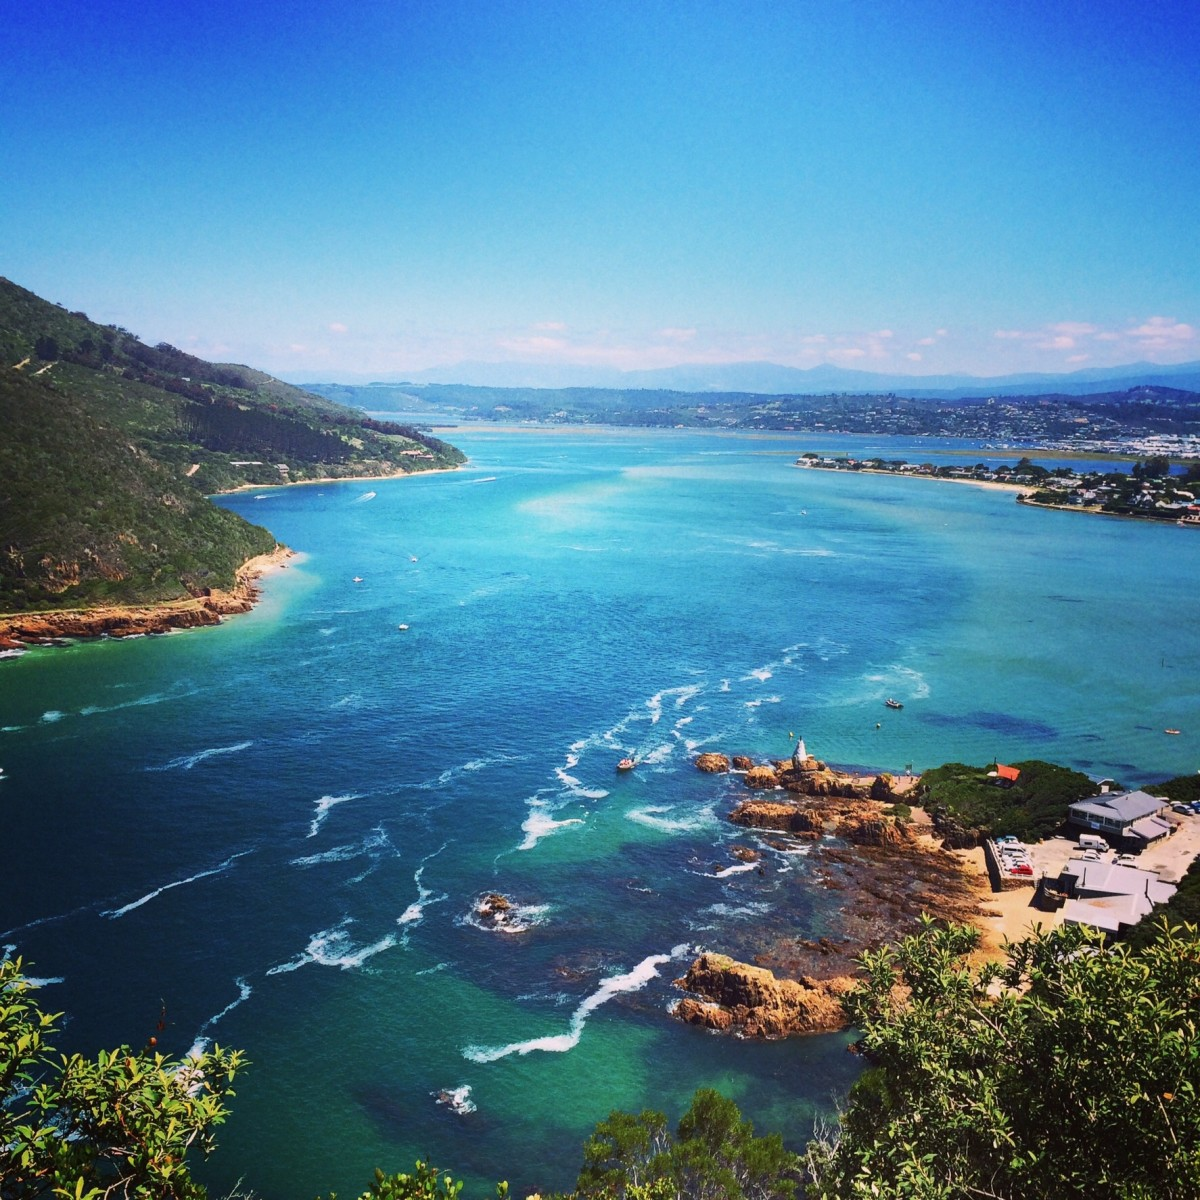 Looking down at the Knysna Lagoon from the viewpoint at The Heads